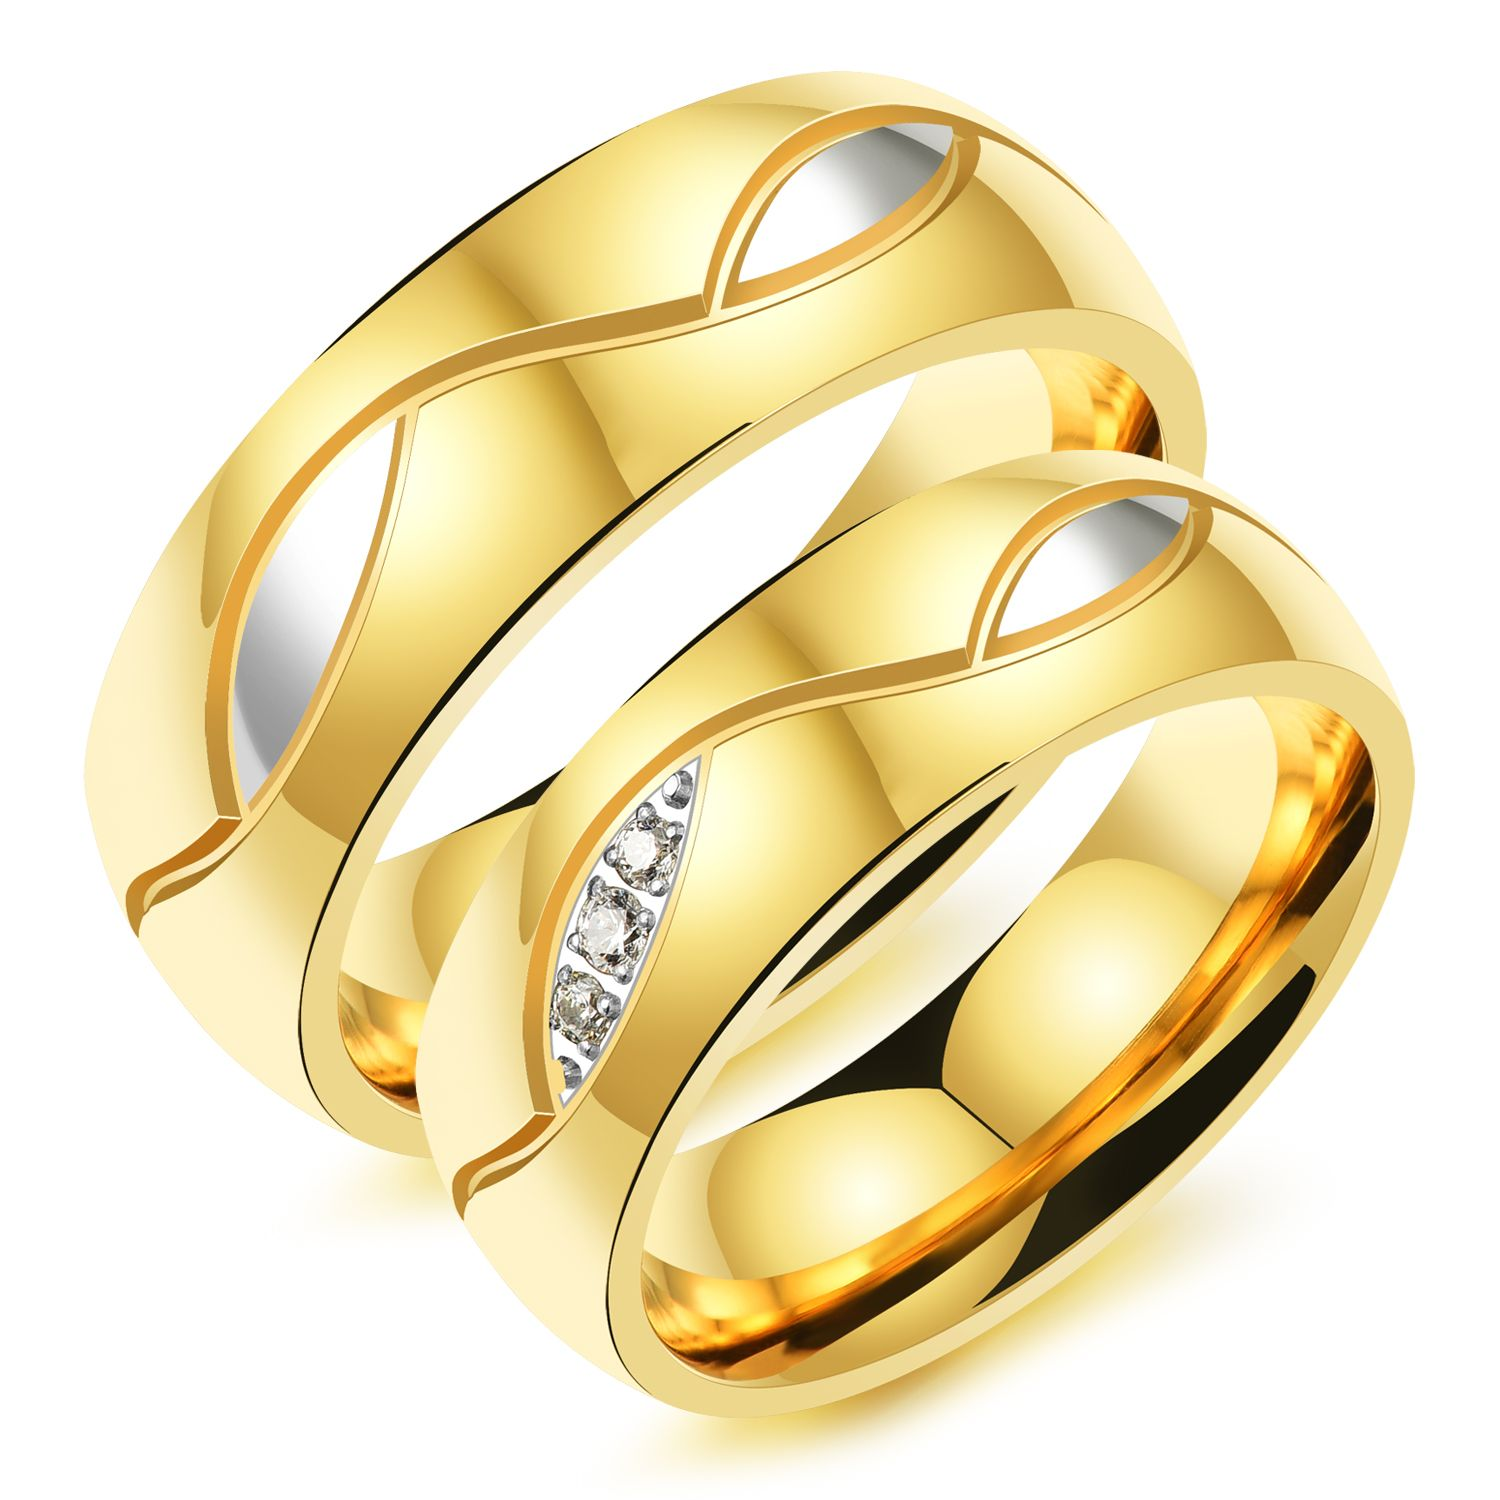 the at pc low diamond rings prices yellow jewellery korean india jeweller gold store dp online amazon in buy naveah